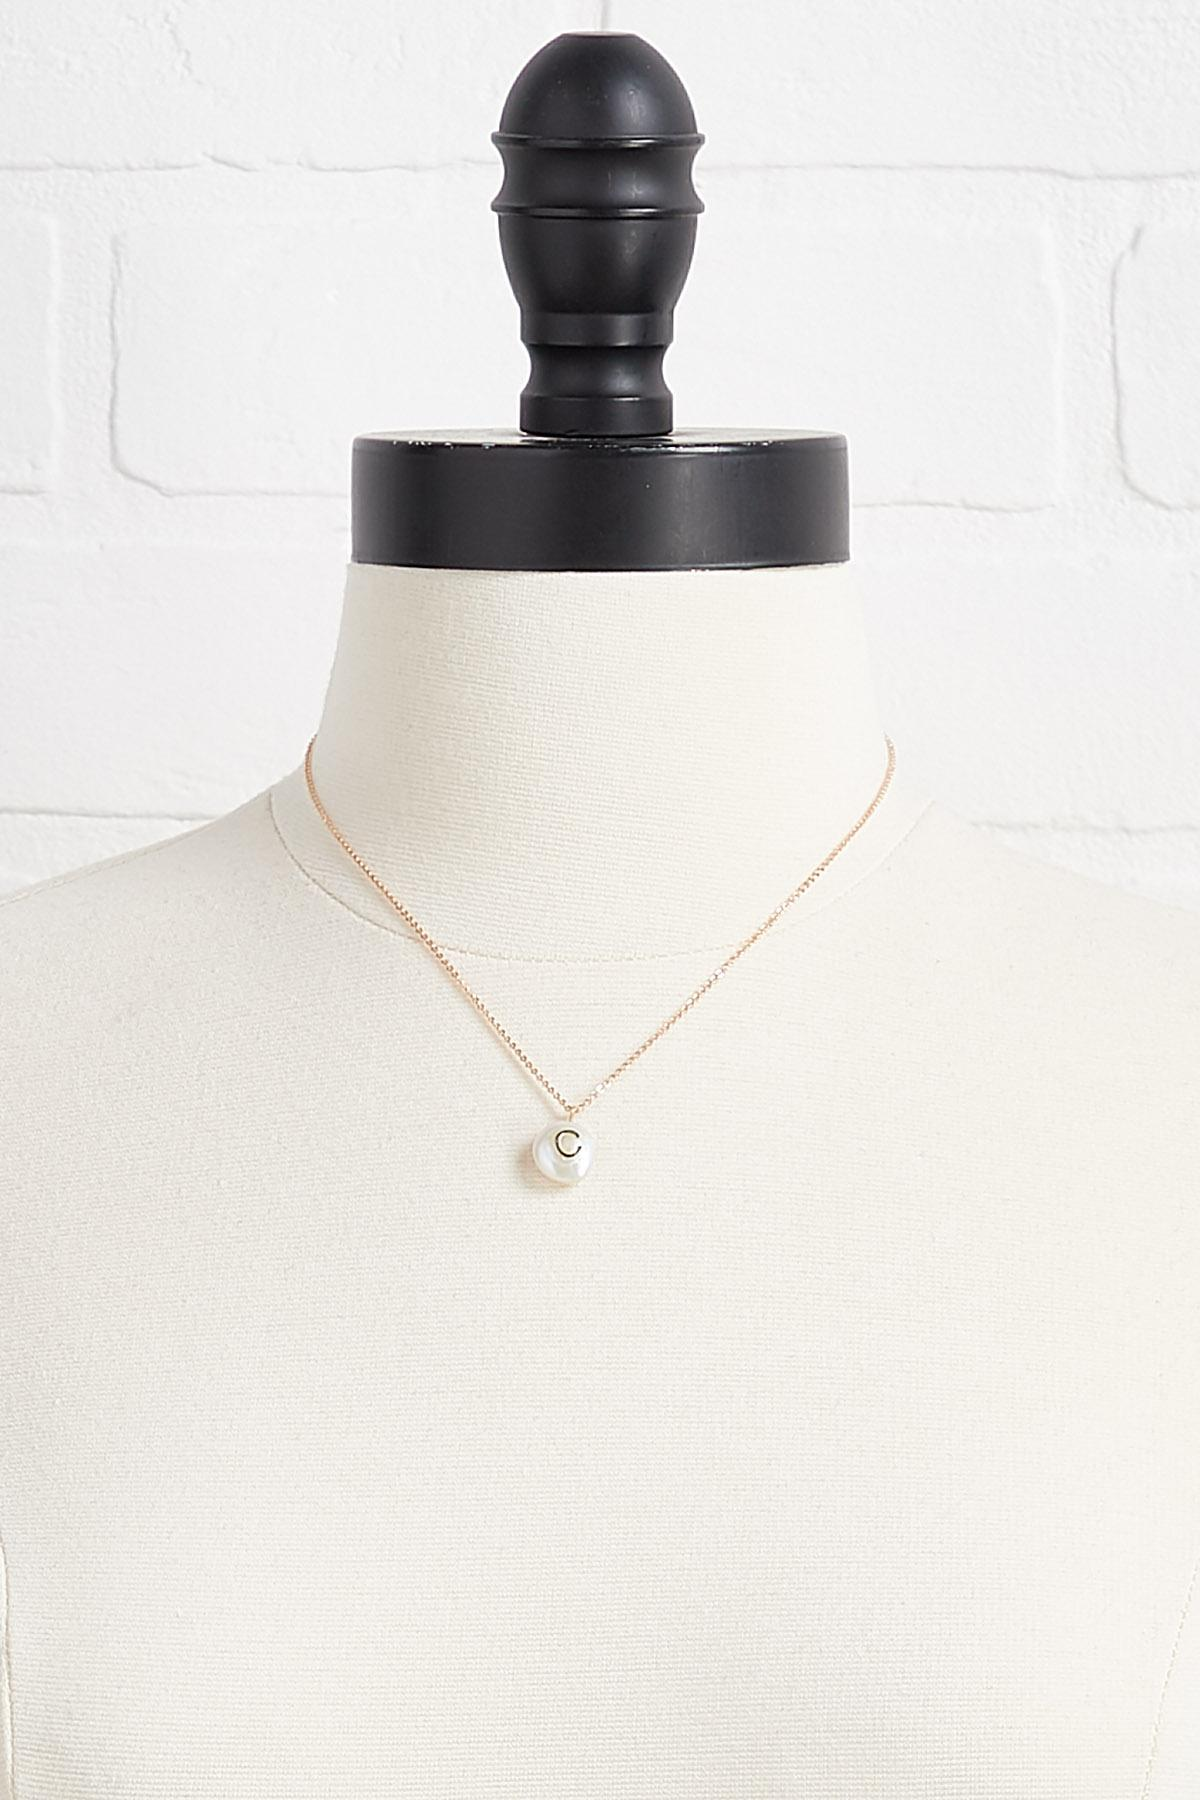 C Initial Pearl Necklace